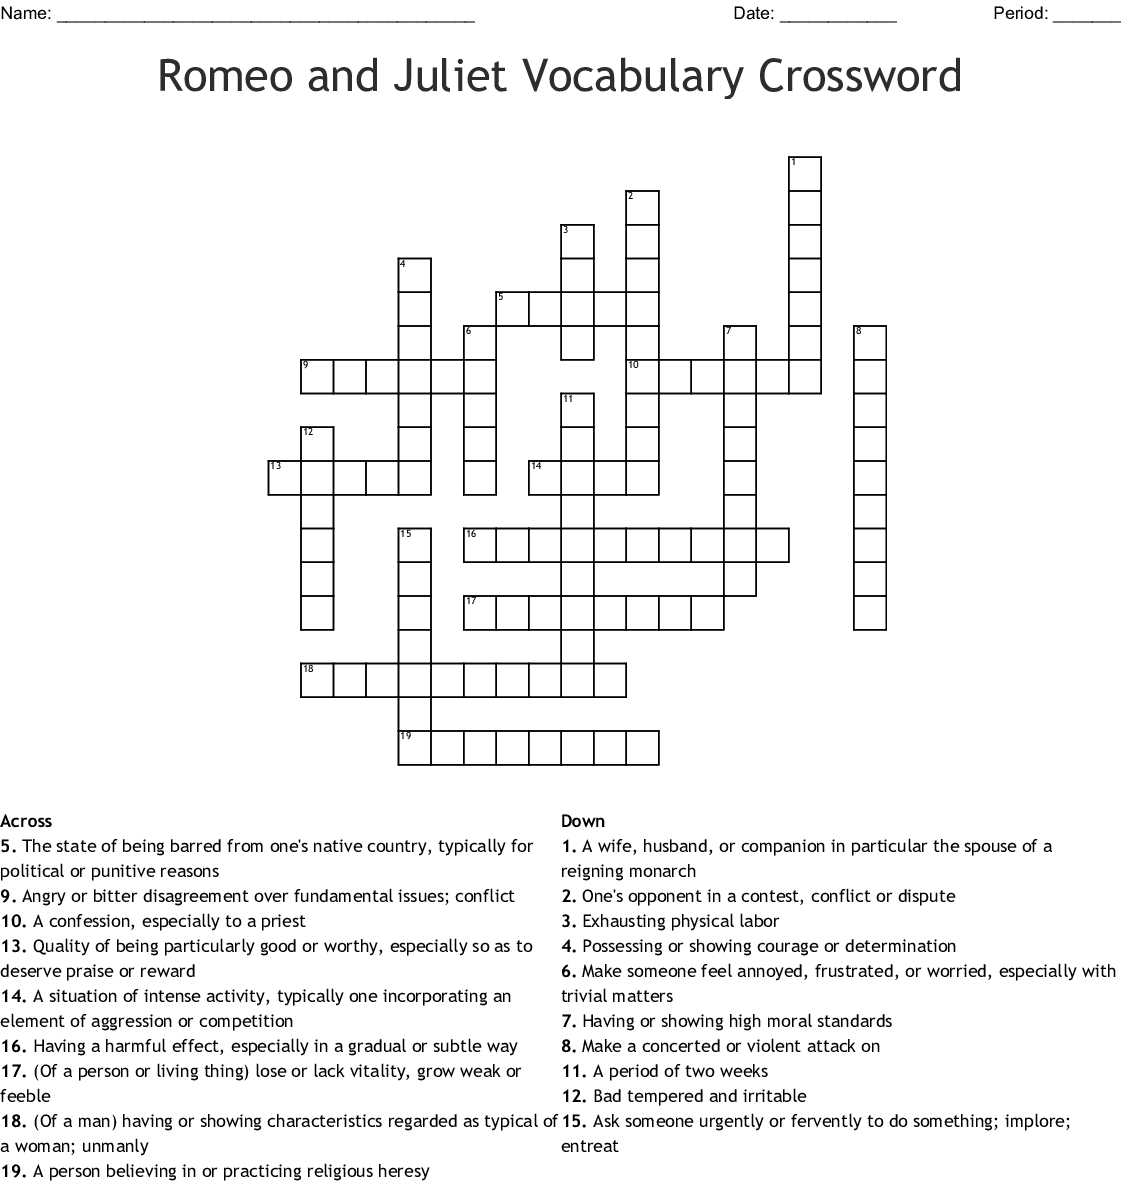 Romeo And Juliet Vocab Crossword